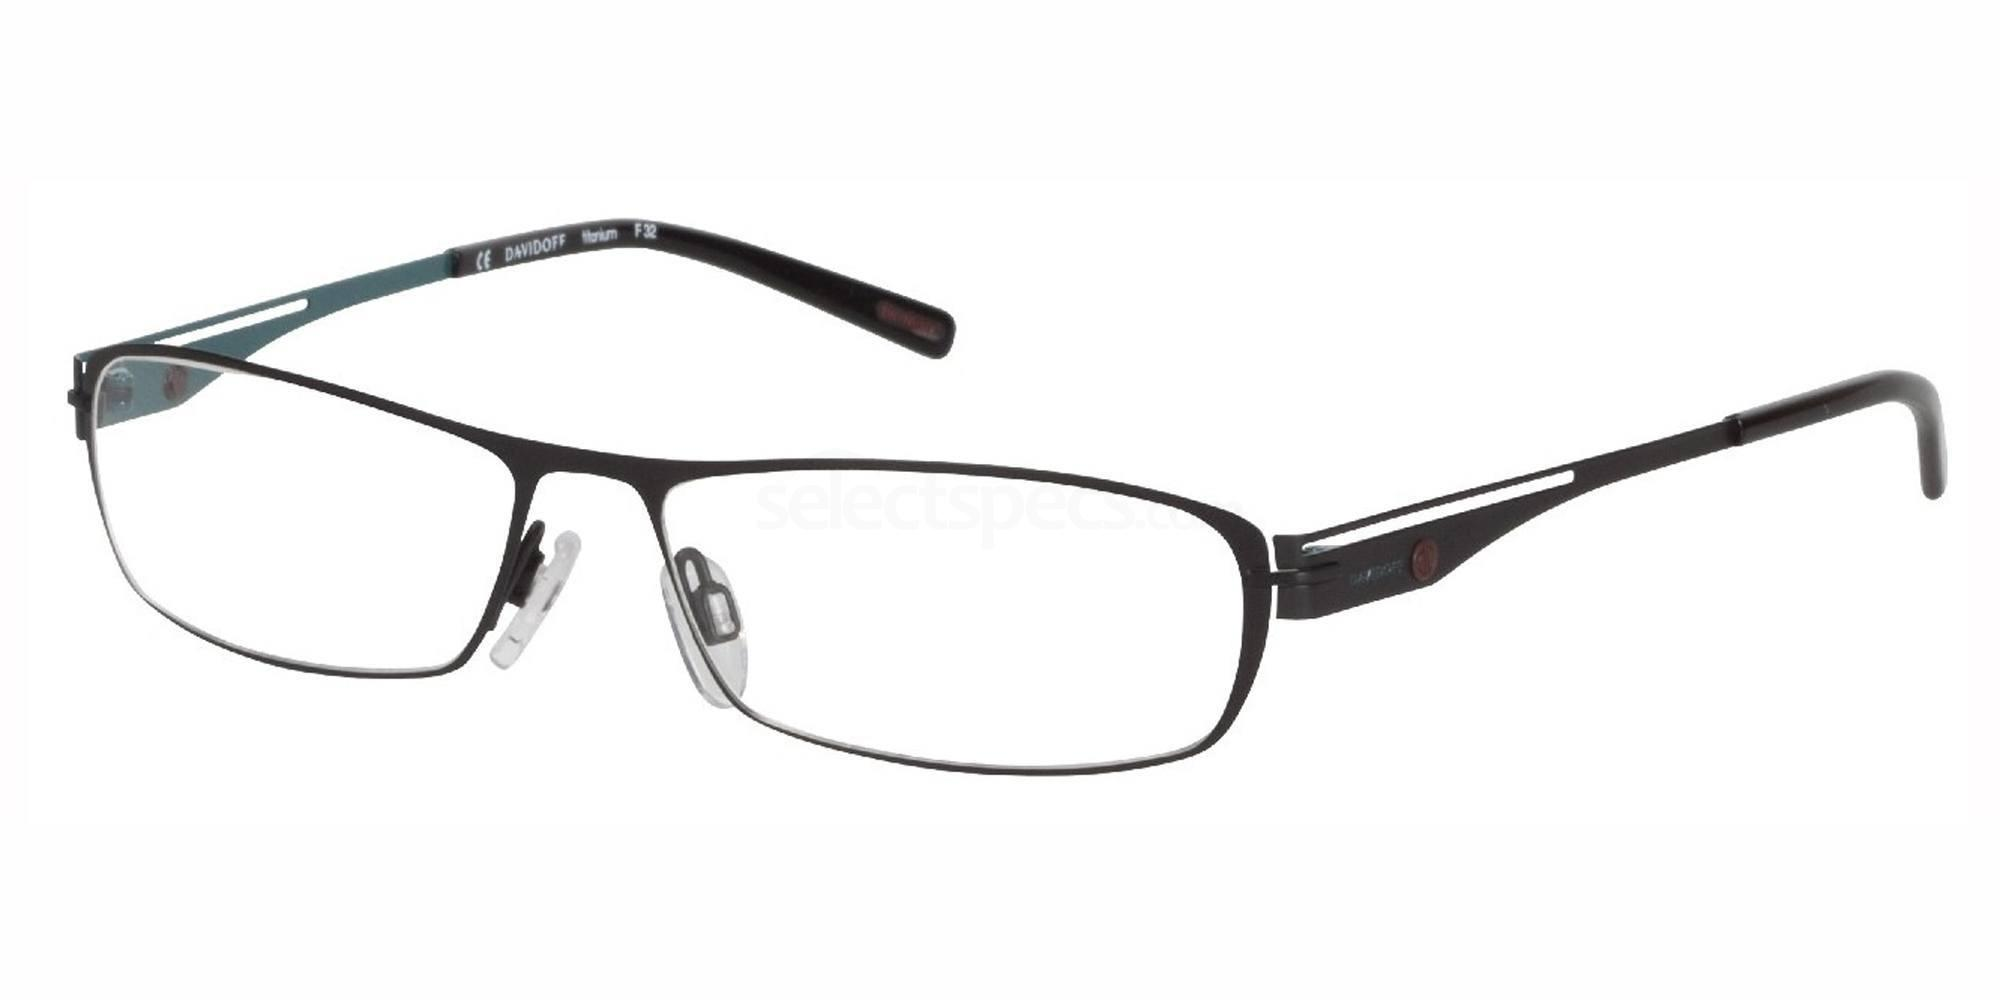 489 95080 Glasses, DAVIDOFF Eyewear